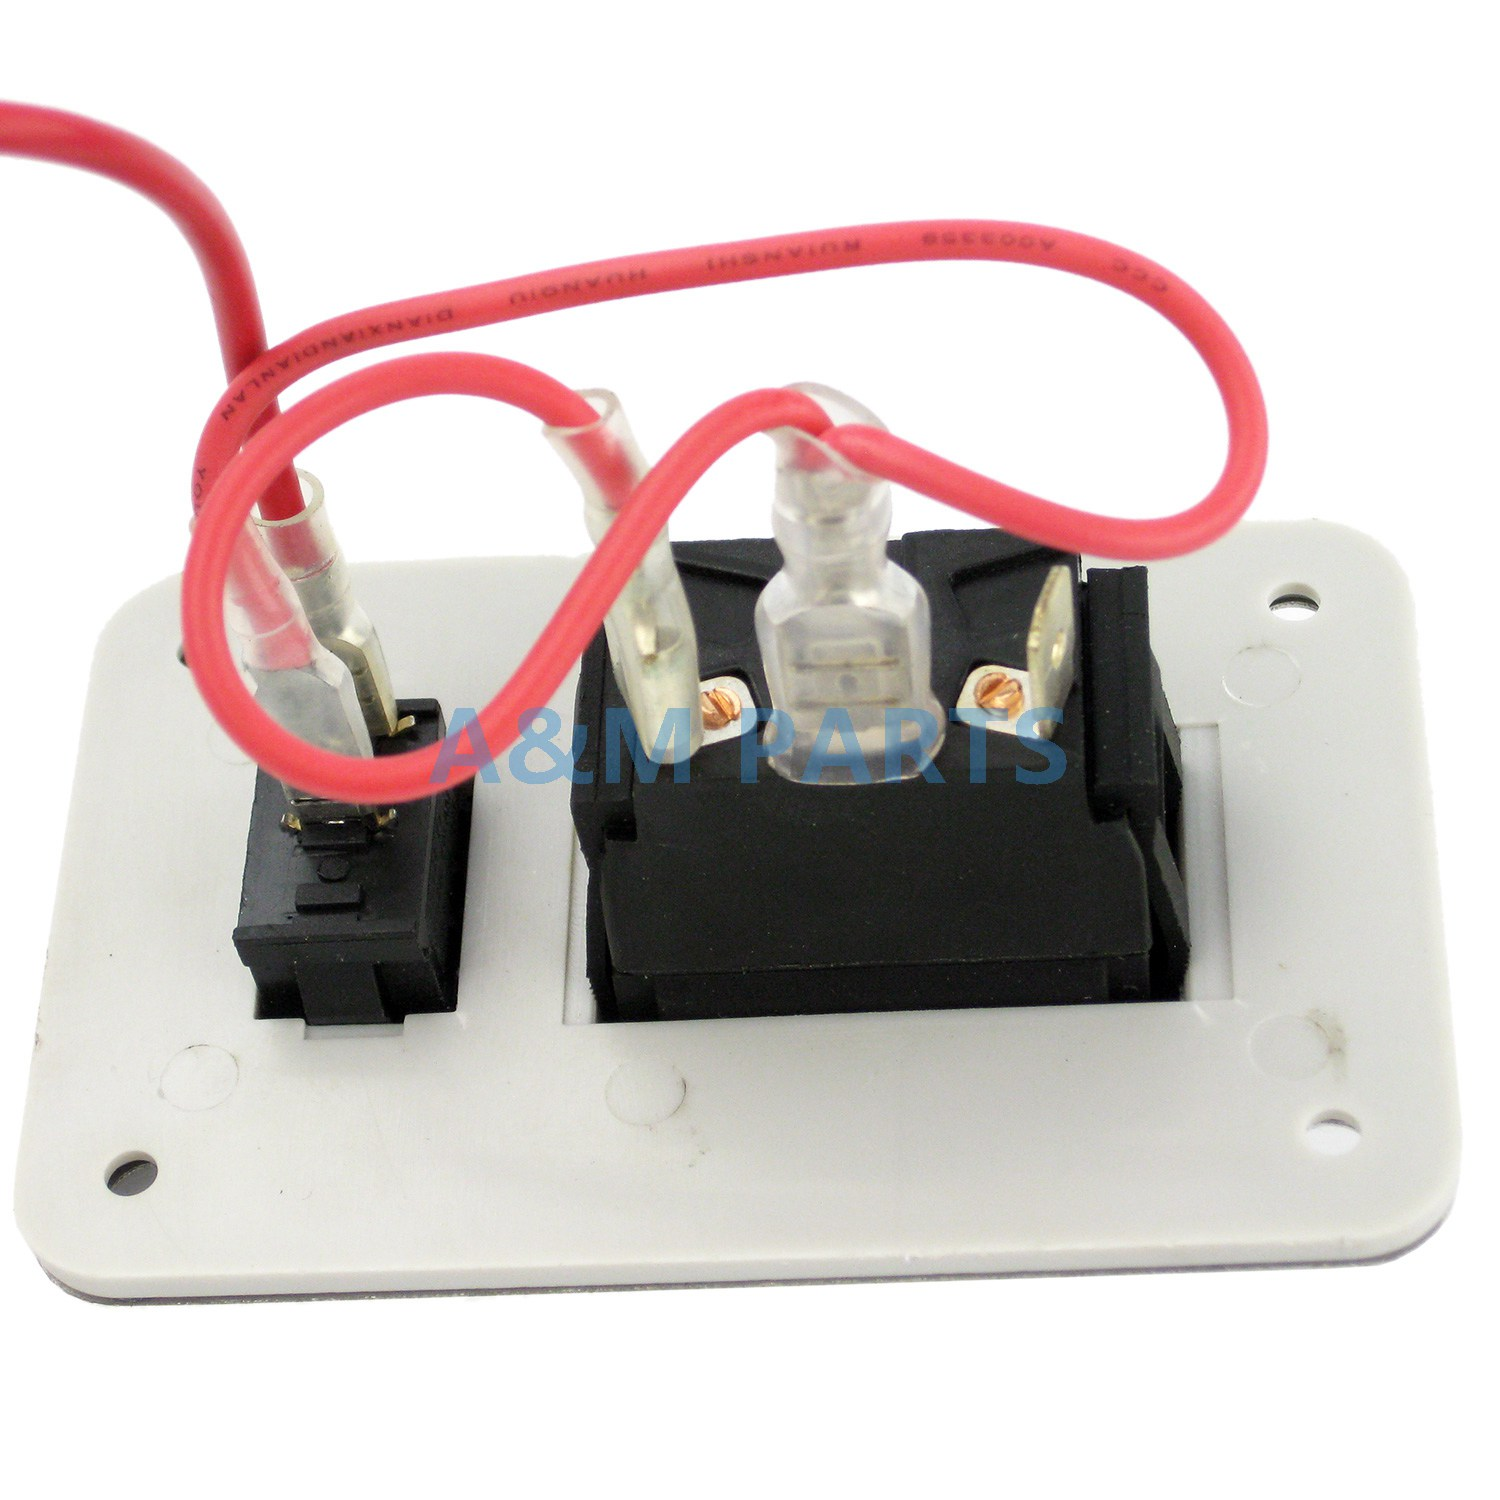 Marine Windlass Up Down Rocker Control Switch Panel For Anchor Pontoon And Wiring Harness Winch In Car Switches Relays From Automobiles Motorcycles On